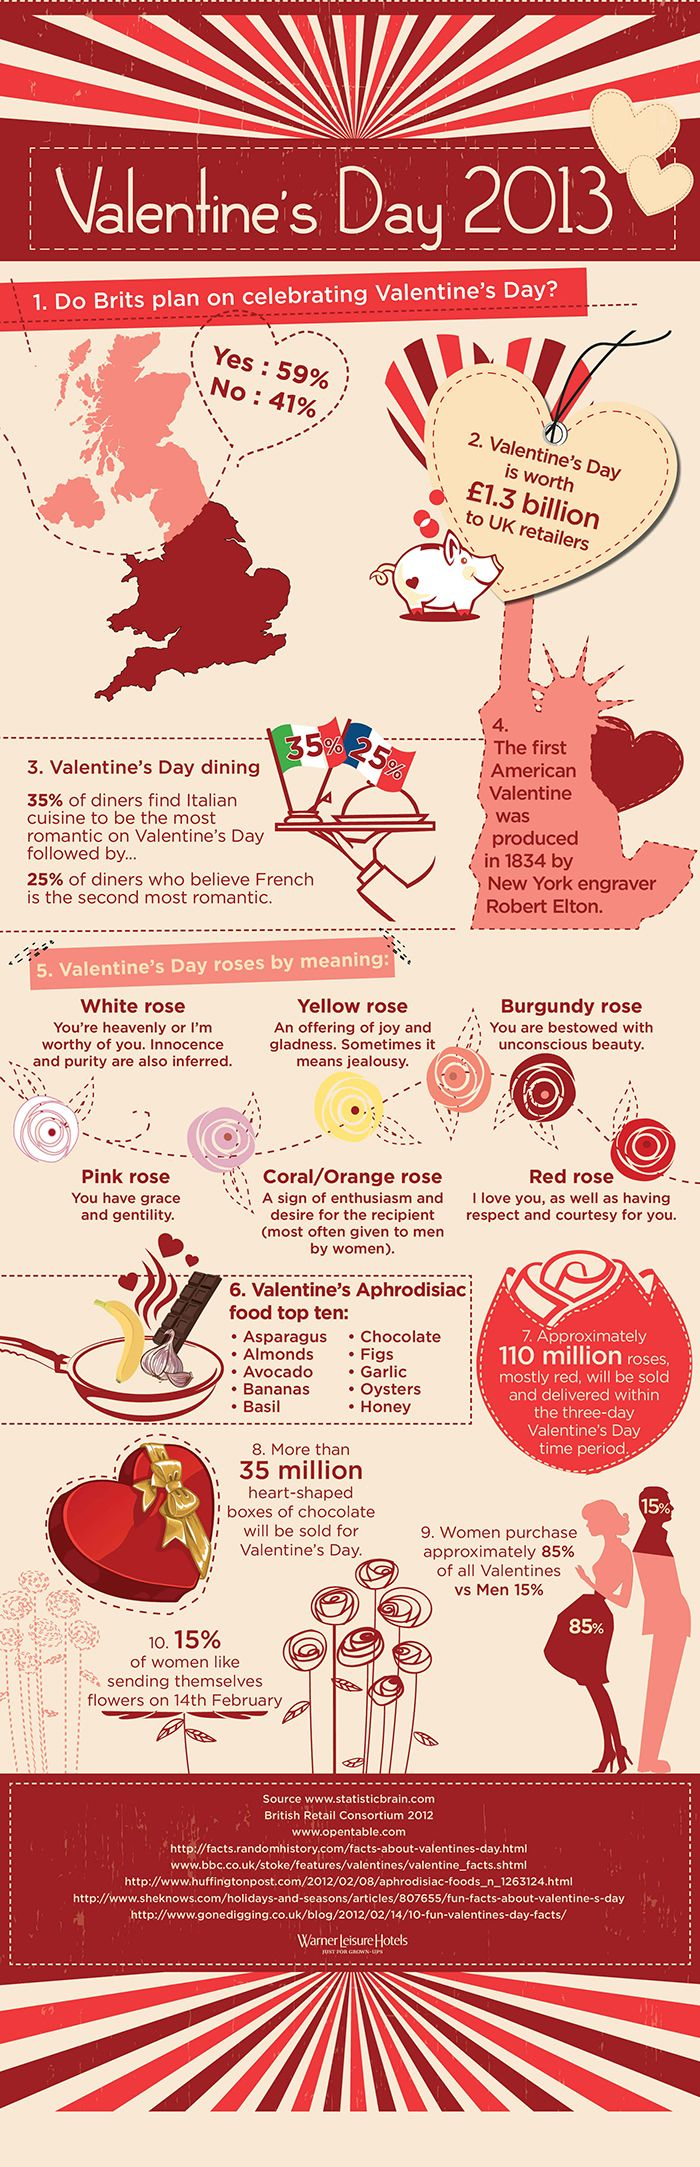 valentines day facts world lovers day is closing and you have hardly 2 days to get in the valentine mood and be prepared for the big time